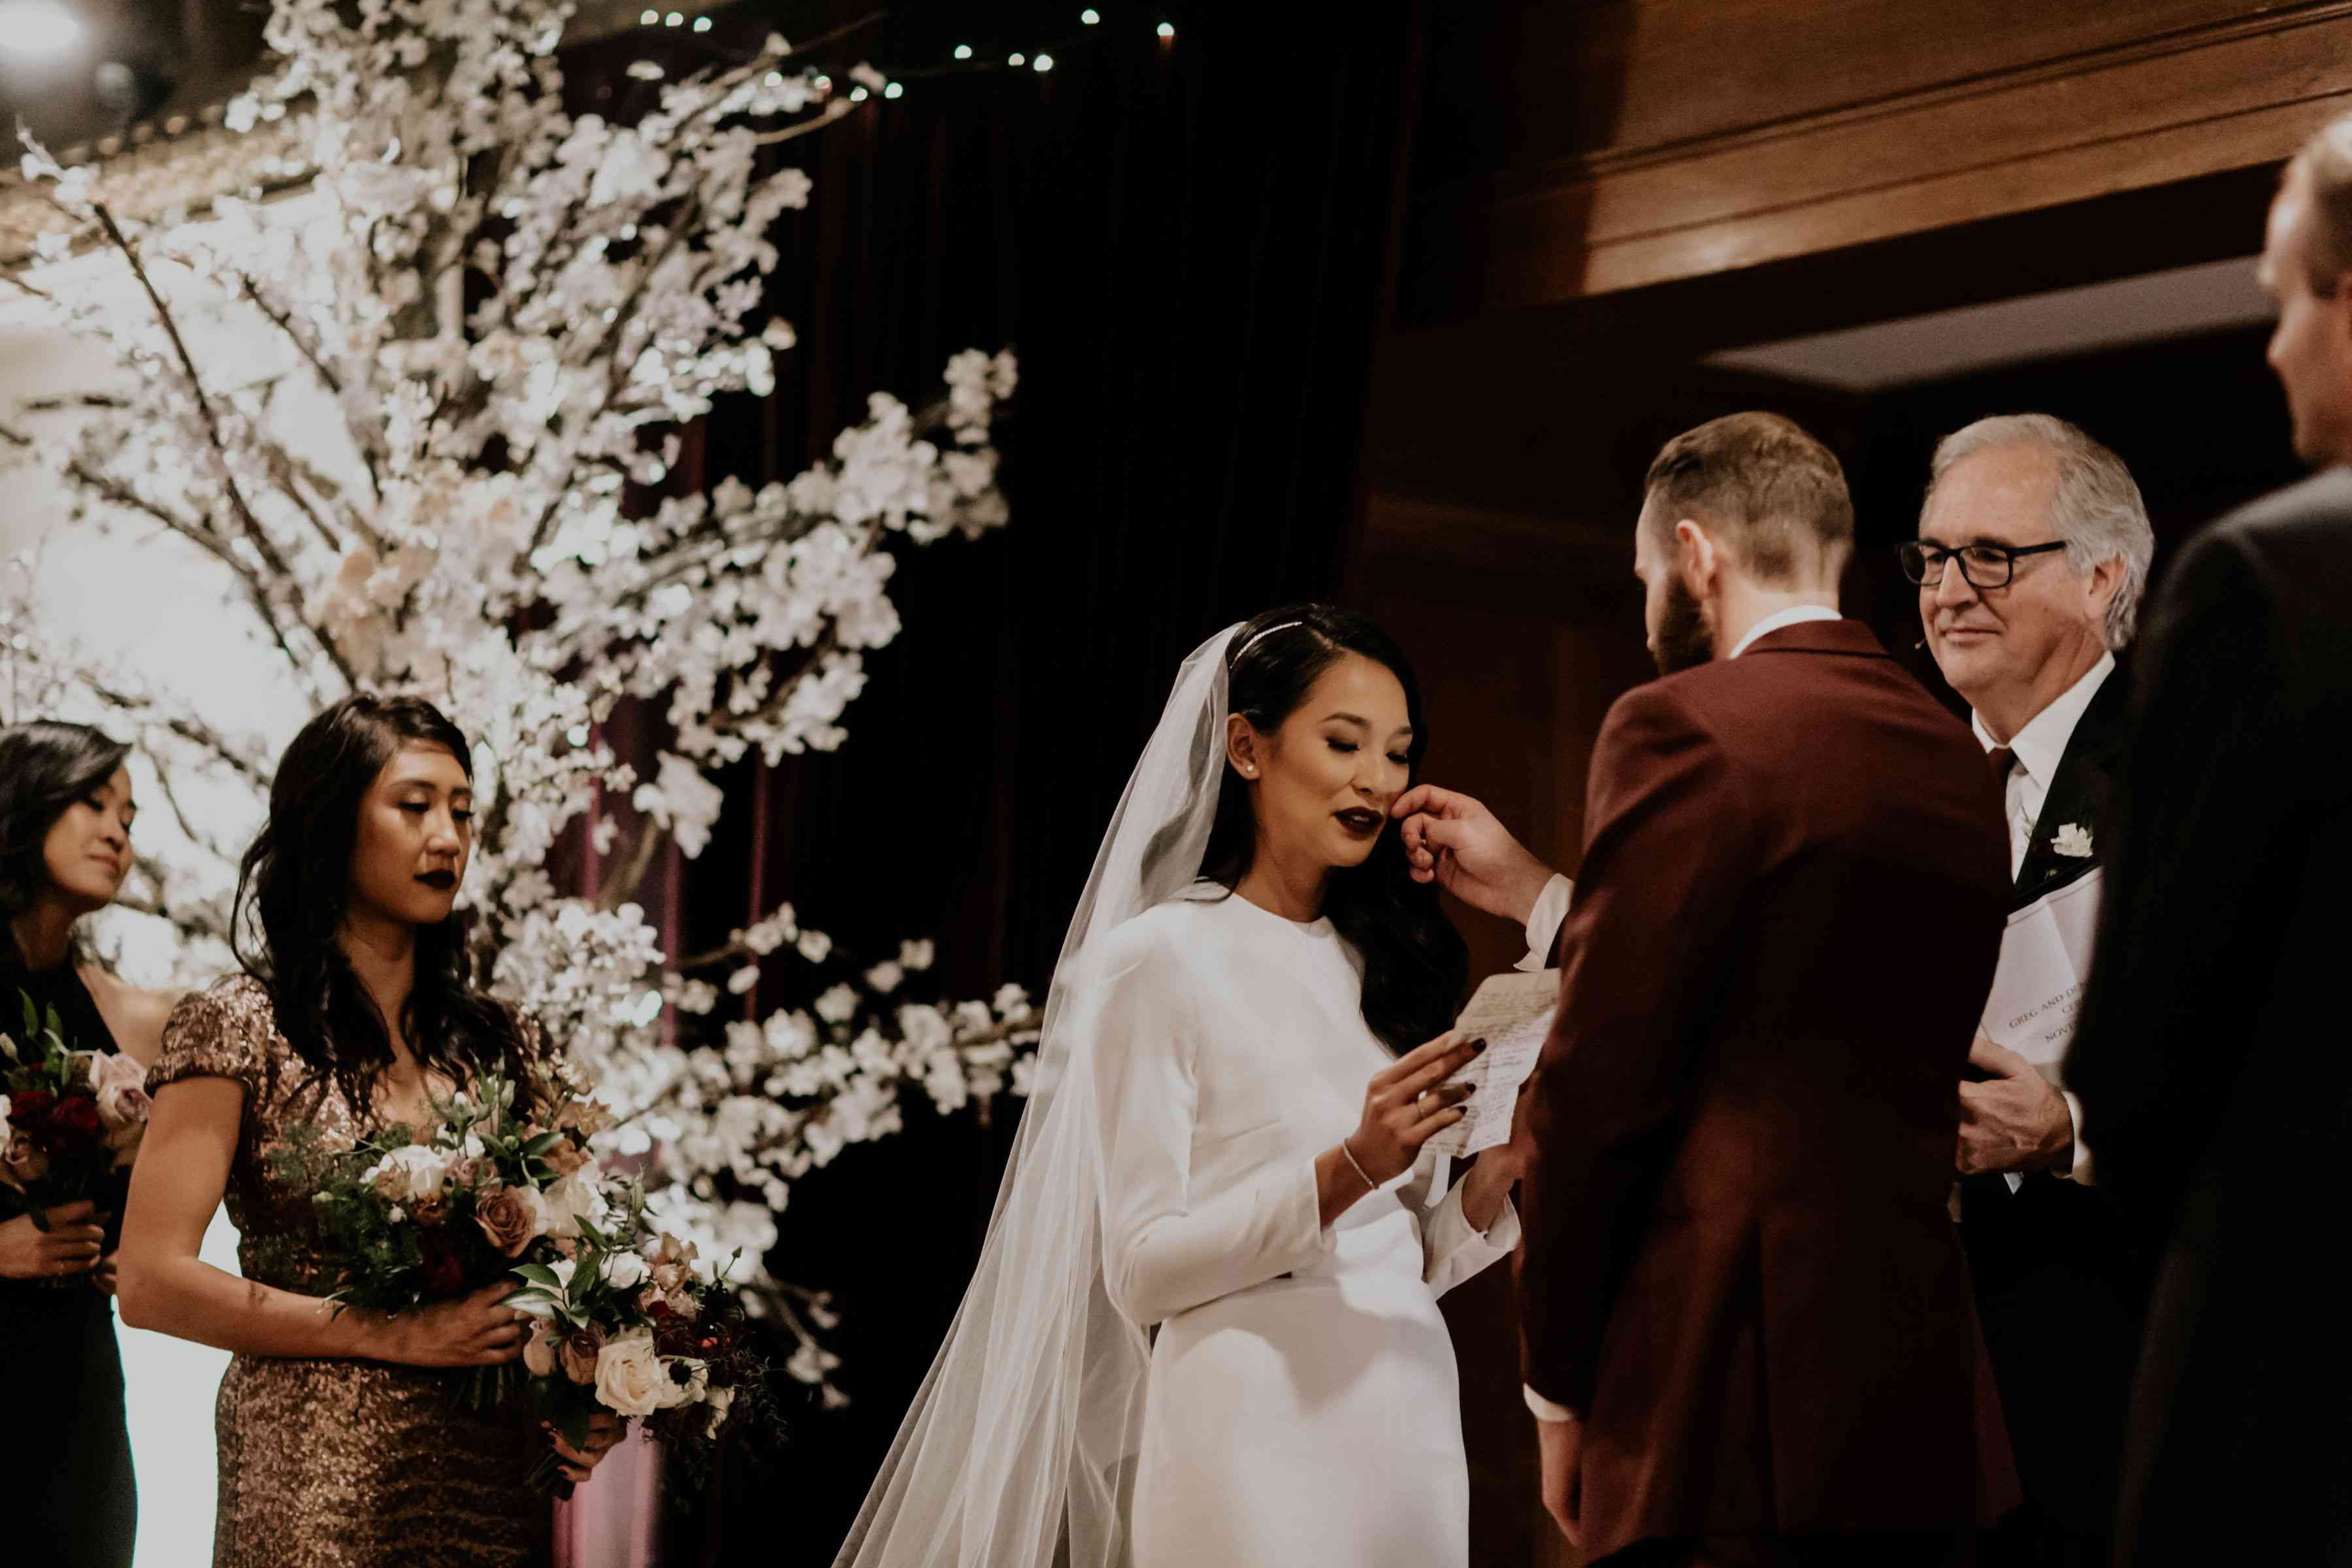 Groom wipes away bride's tear while she reads wedding vows